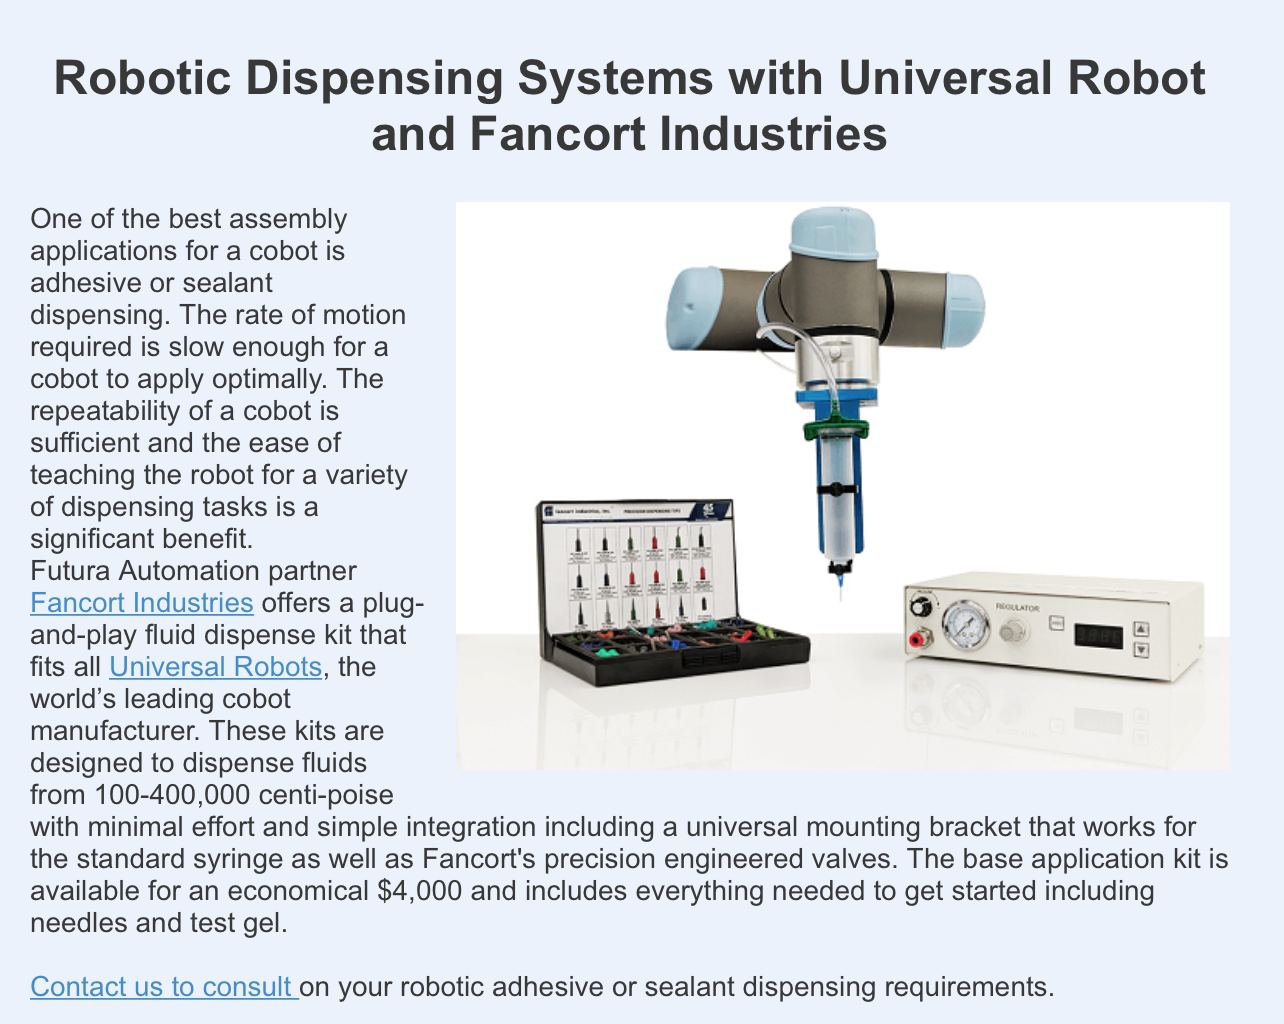 Futura Automation - Robotic Dispensing Systems with Universal Robot and Fancort Industries